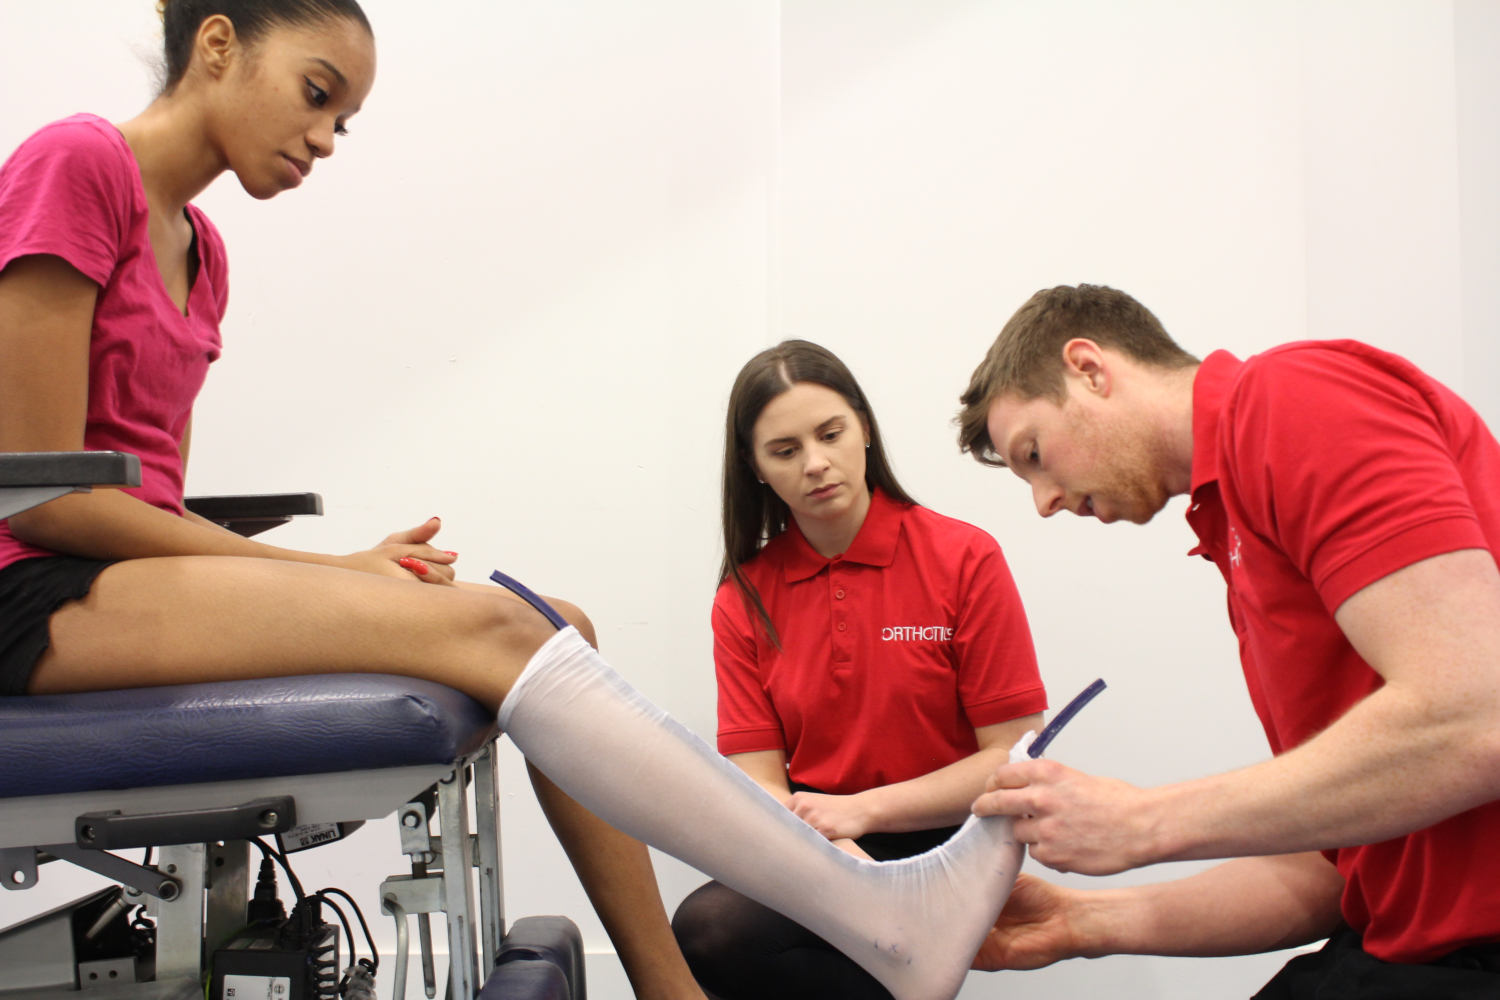 Pair of Orthotics professionals working with a young girl.